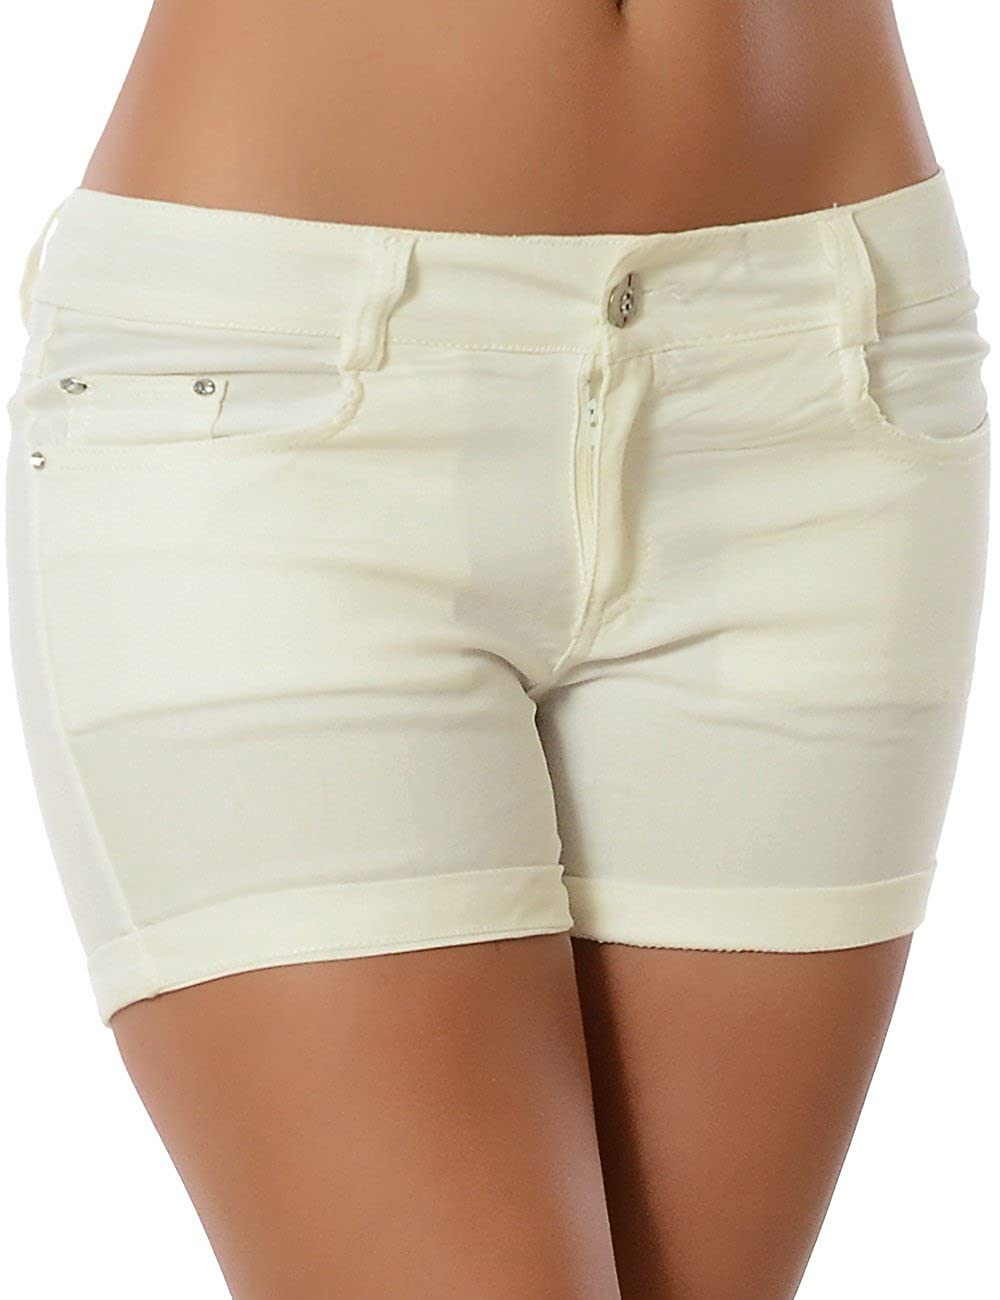 Damen Shorts Hot-Pants Kurze Hose DA 13289 DA13289-1106